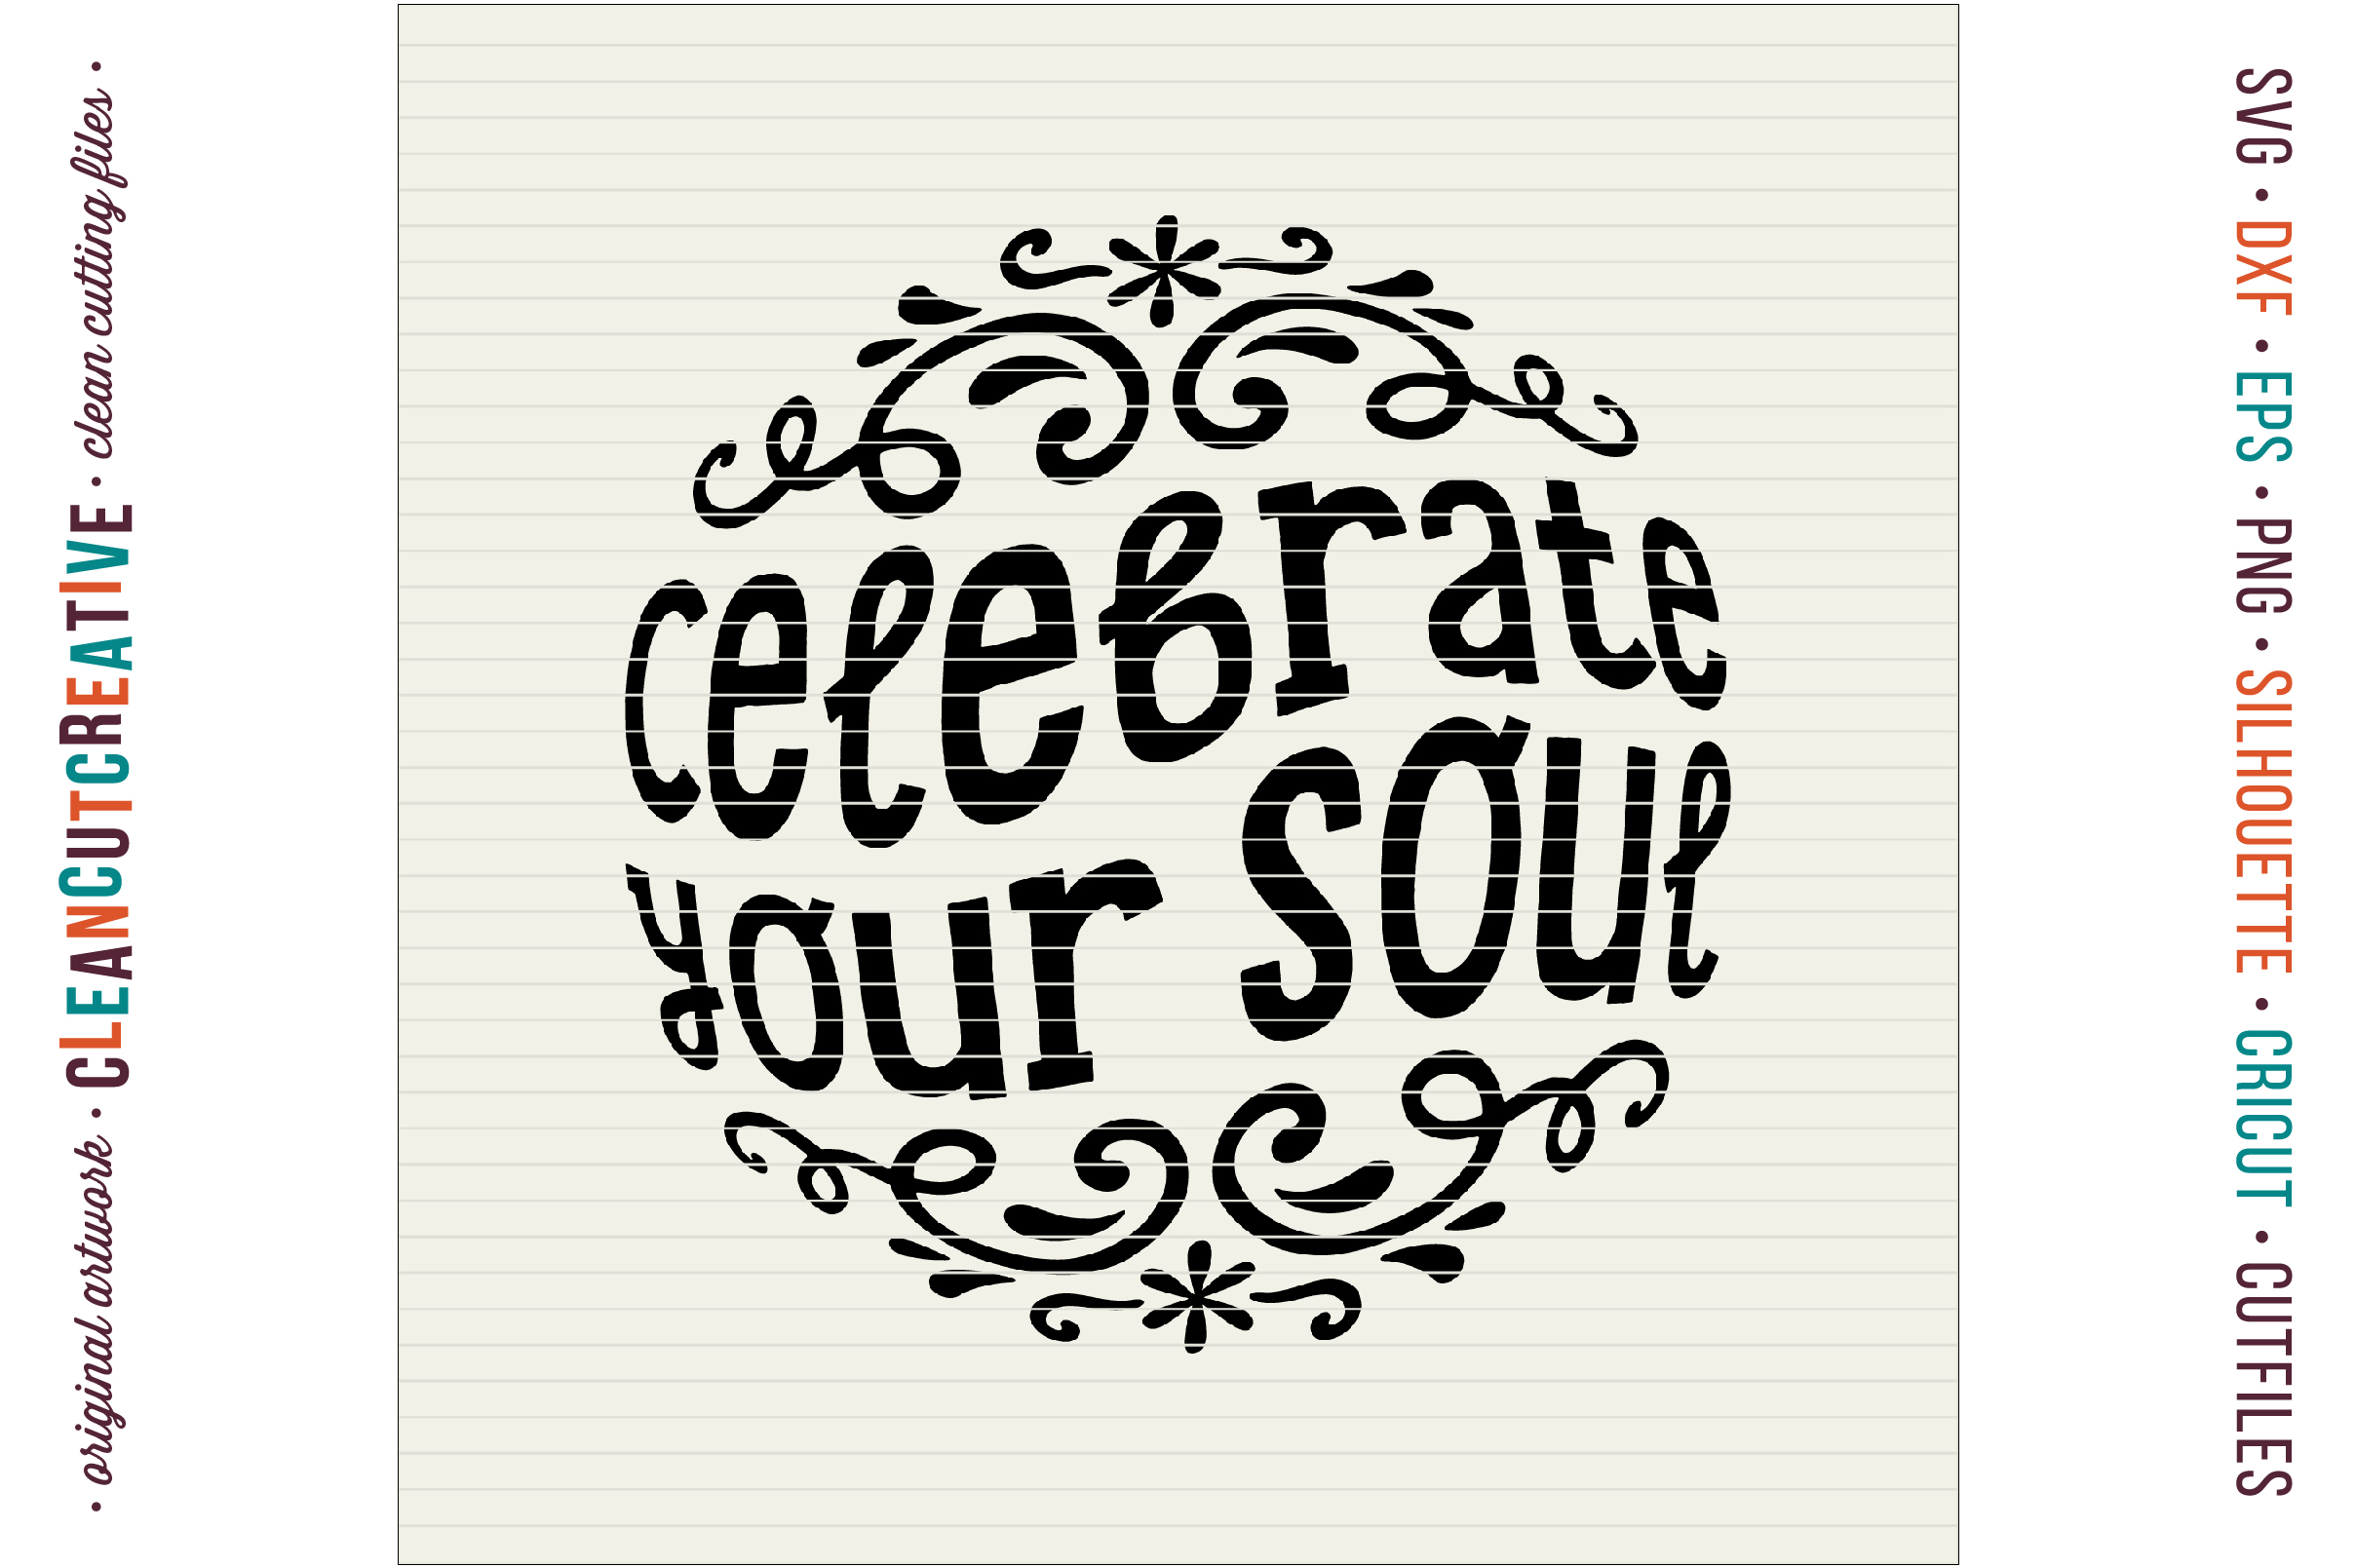 CELEBRATE YOUR SOUL! - Inspiring Quote design for crafters example image 3